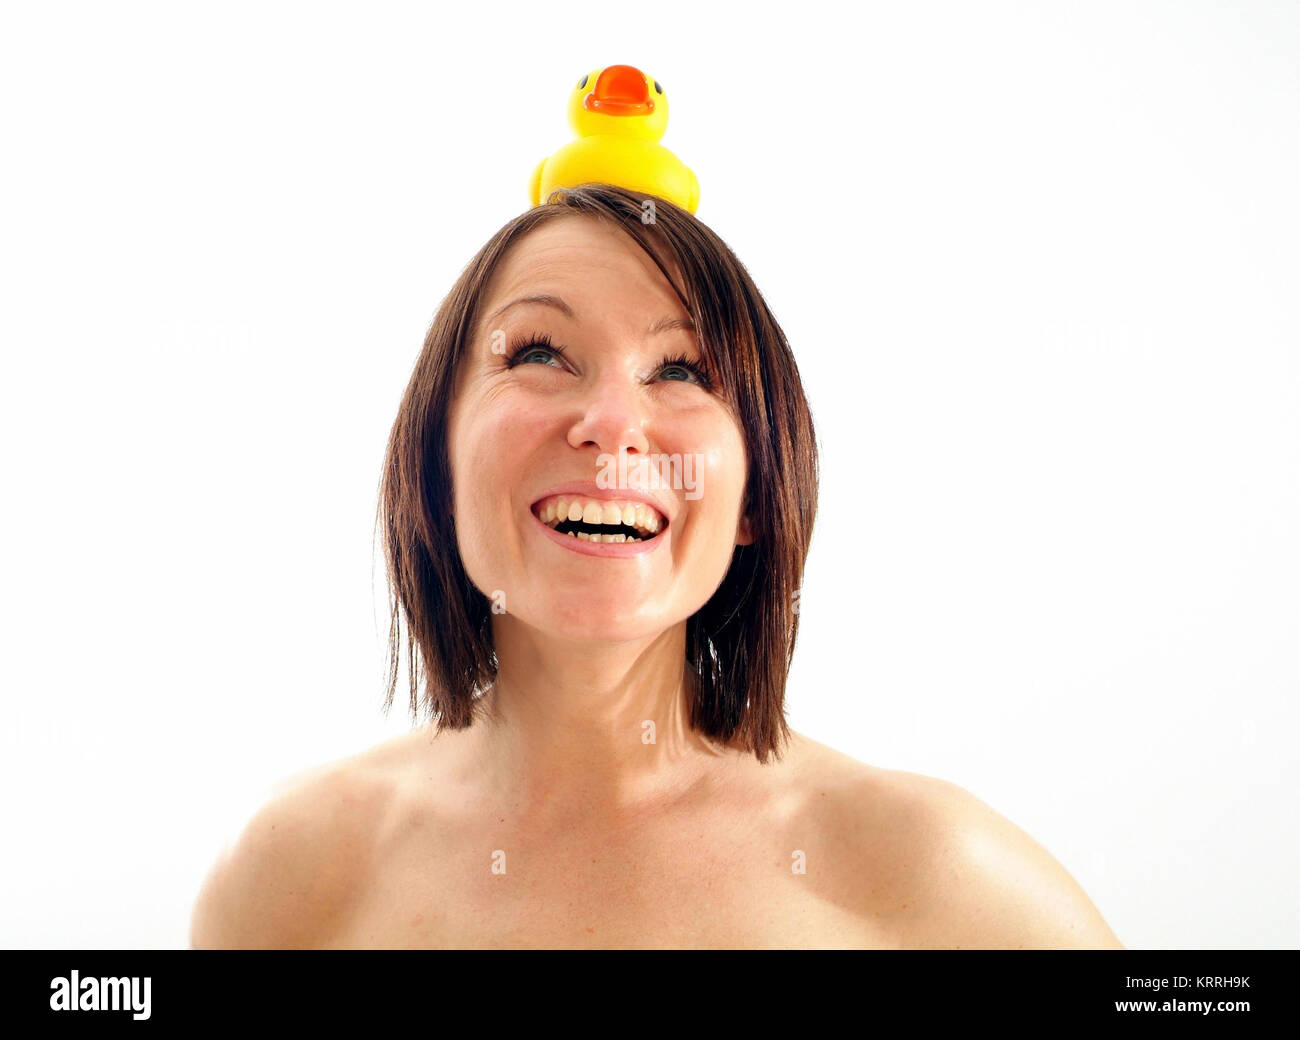 Junge, lachende Frau mit Badeente am Kopf - young, laughing woman with rubber duck on head Stock Photo